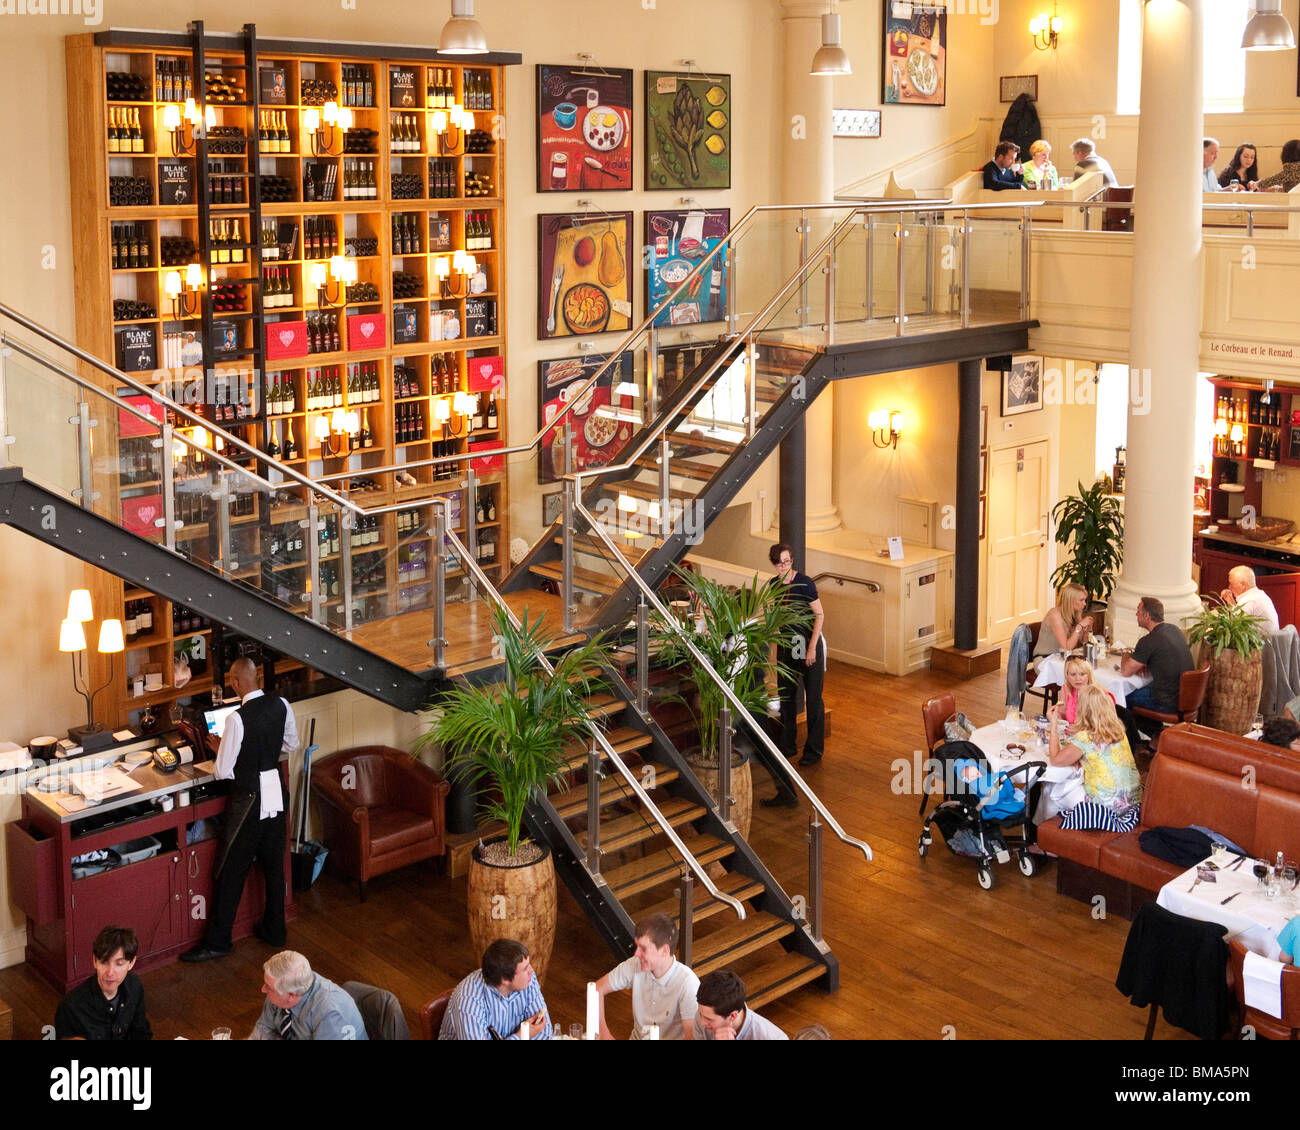 Raymond Blanc's restaurant, 'Brasserie Blanc', in the former Quaker Meeting House, Cabot Circus, Bristol, - Stock Image